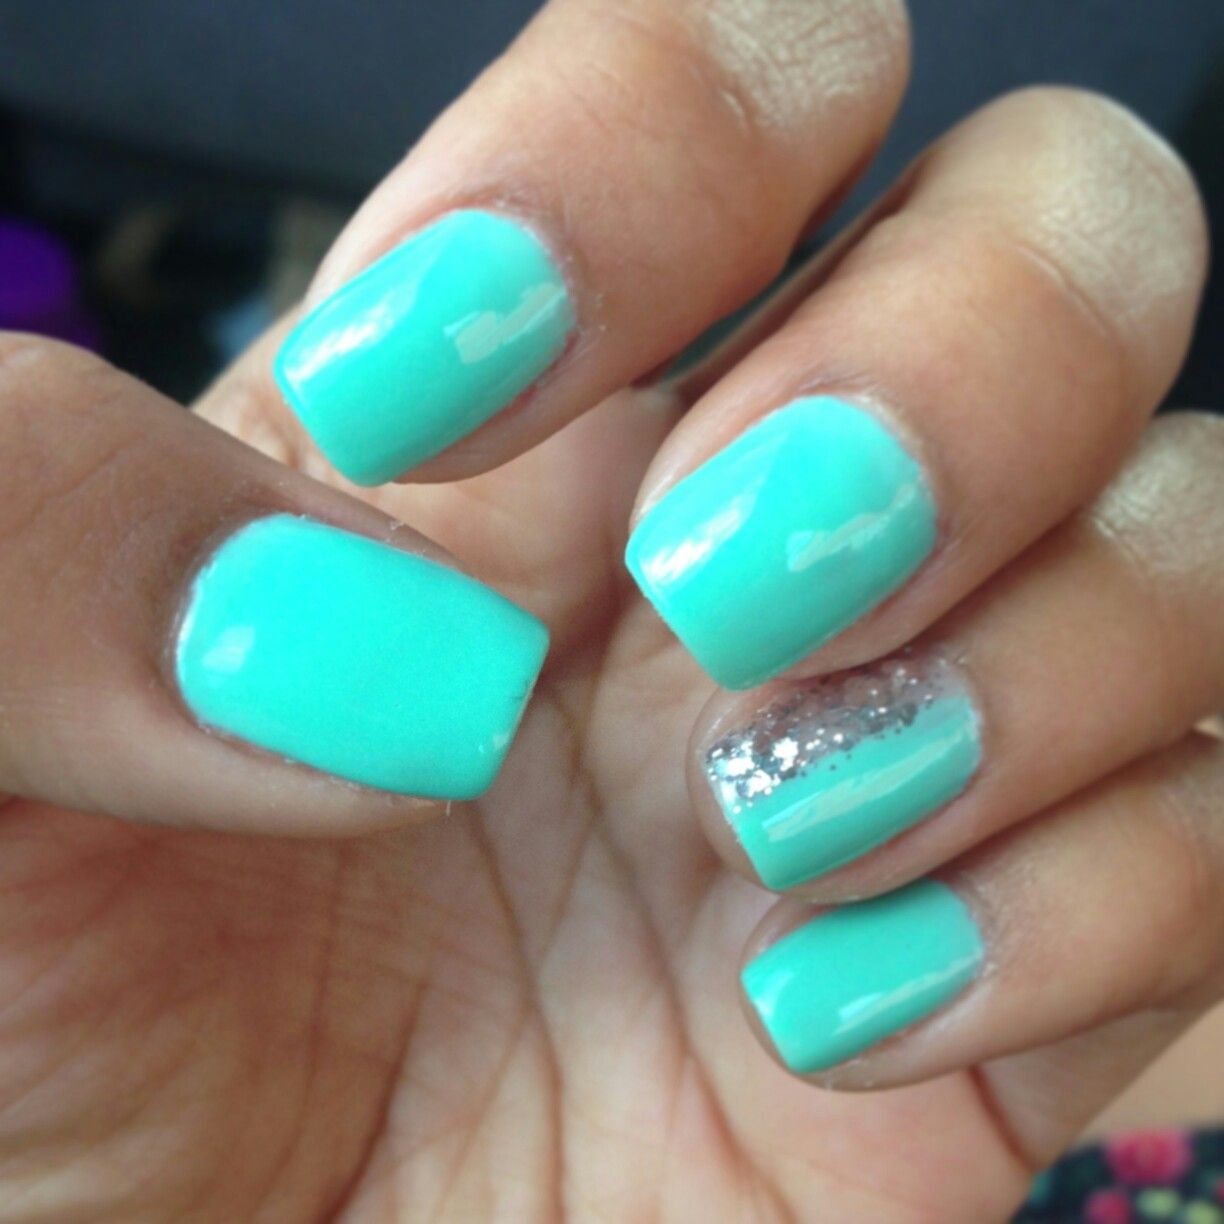 Aqua Gel Nails Aqua Nails Classy Nail Designs Cute Spring Nails